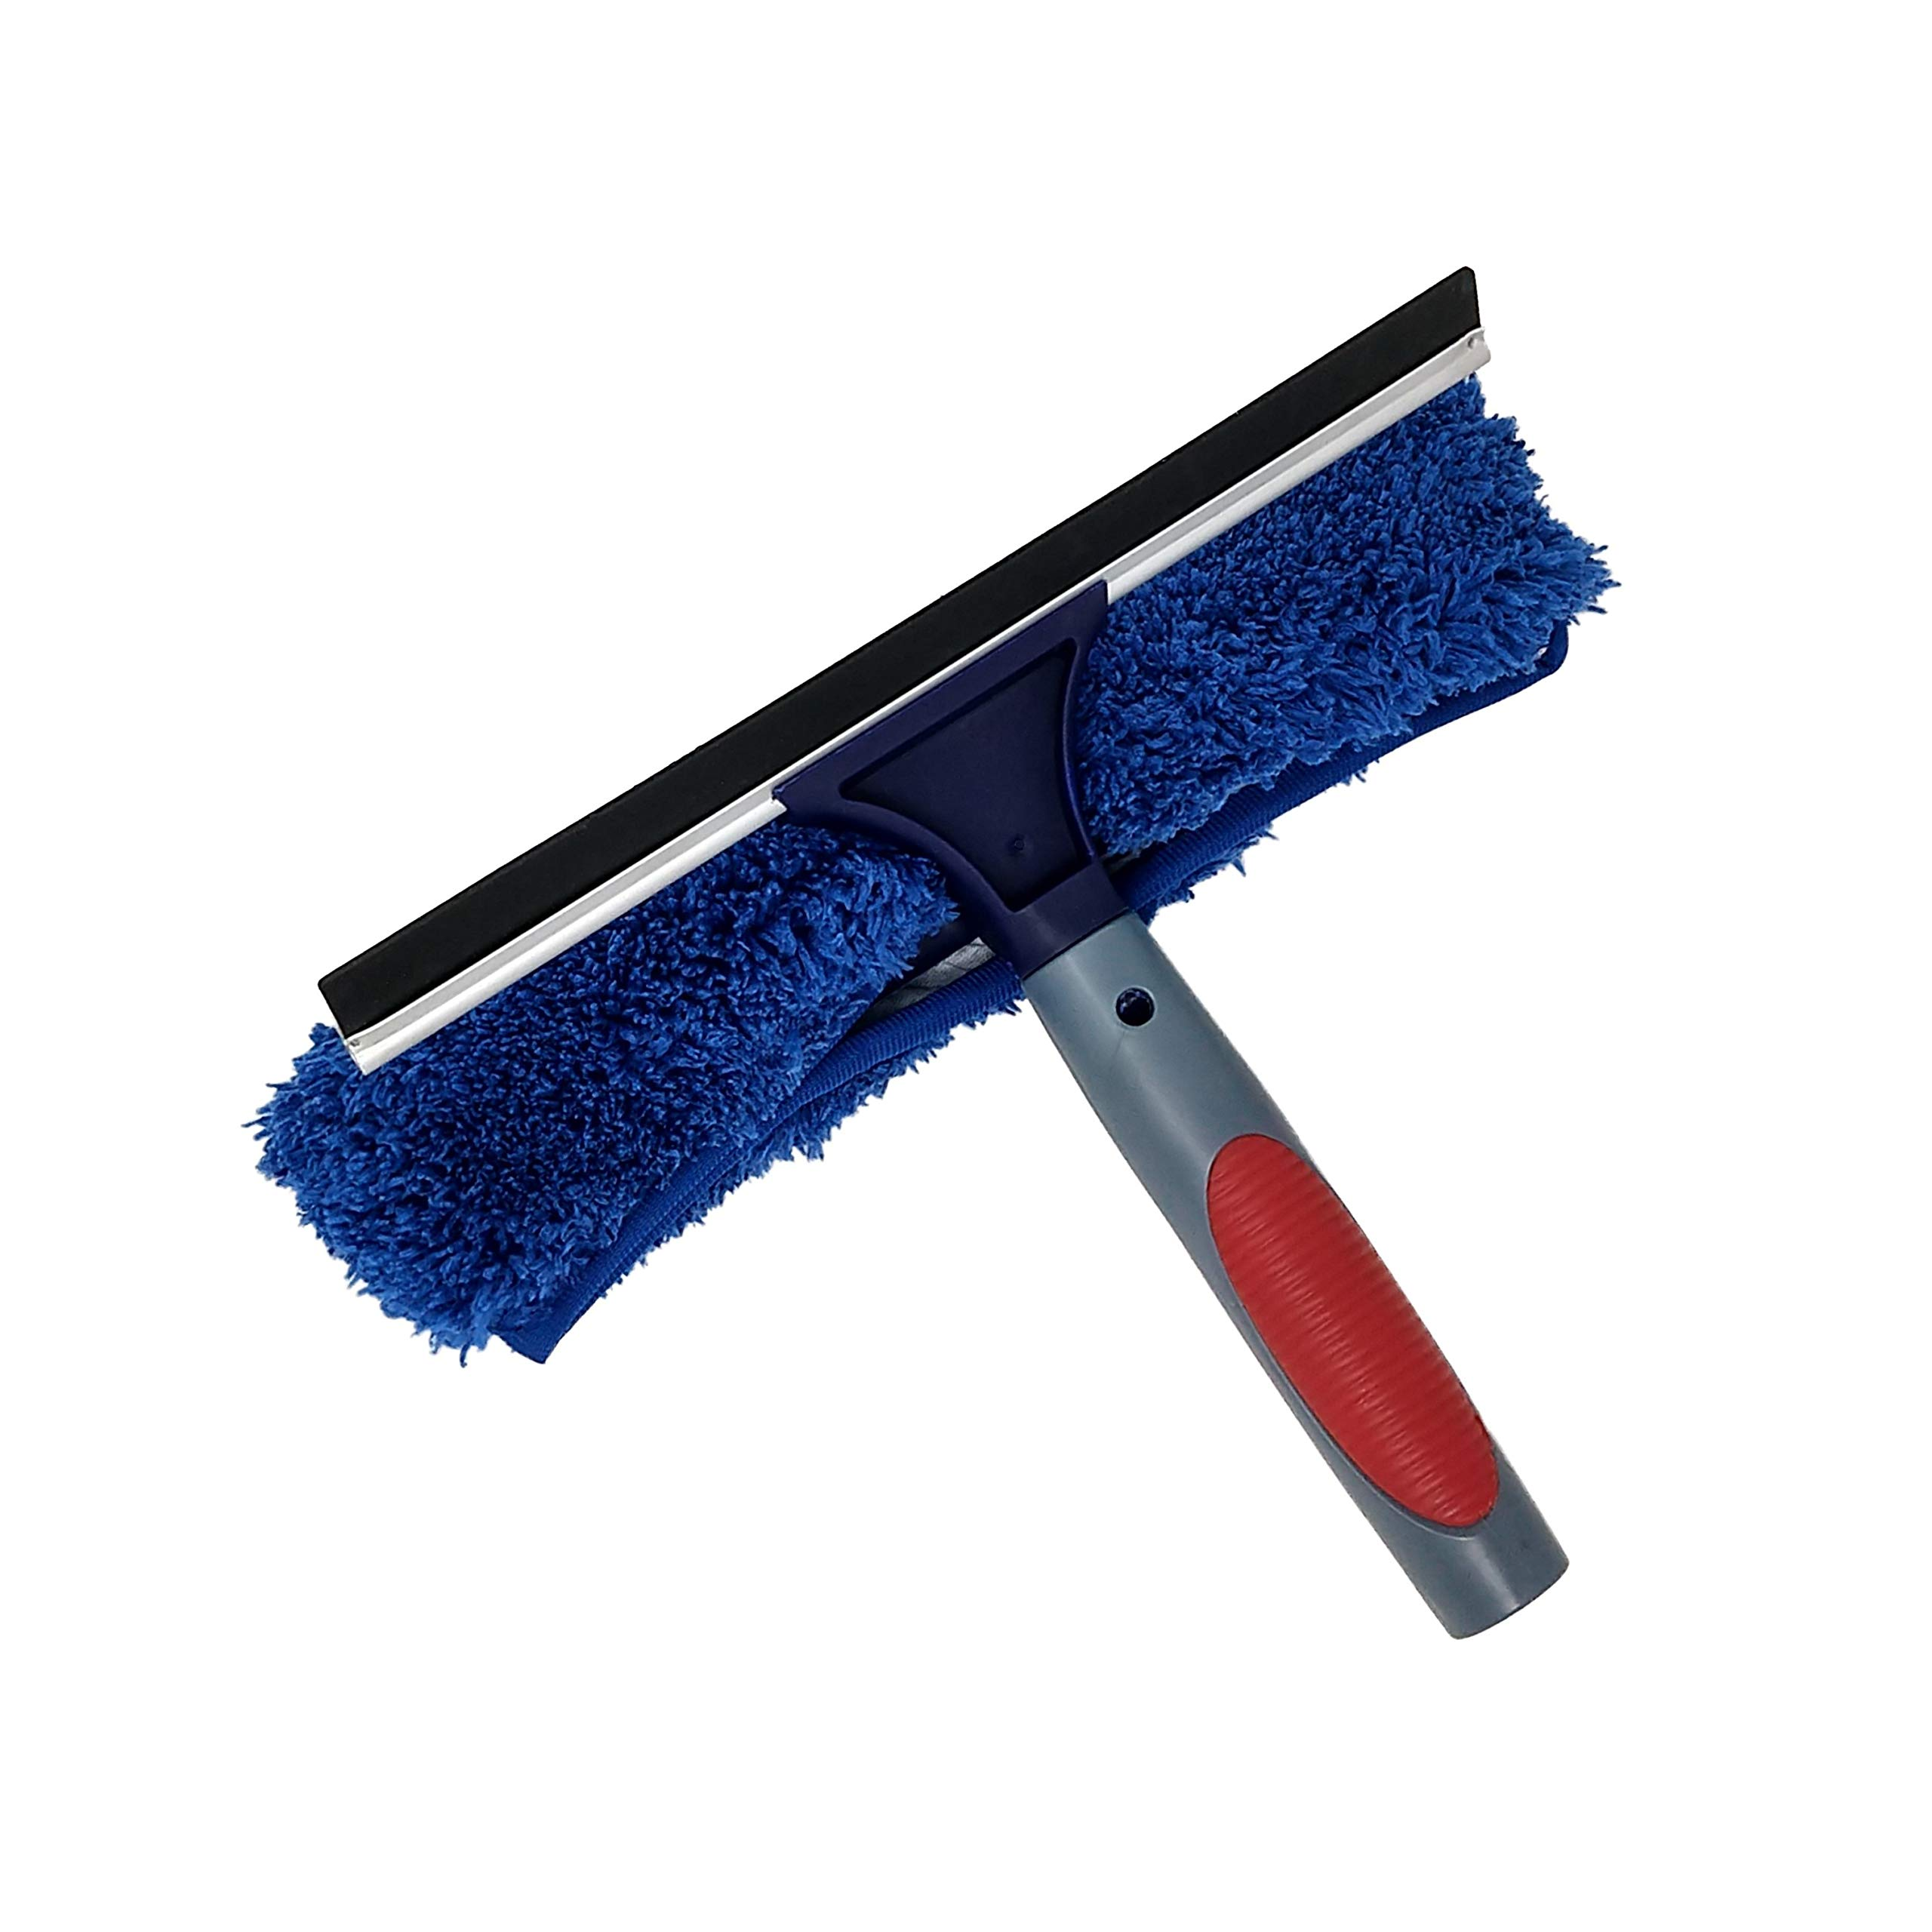 Pomatree Professional Window Cleaning Rubber Squeegee and Microfiber Cloth Scrubber   Combo Set 2-in-1   Washer Attachment Tool for Extension Pole   For Commercial Business and Home Use